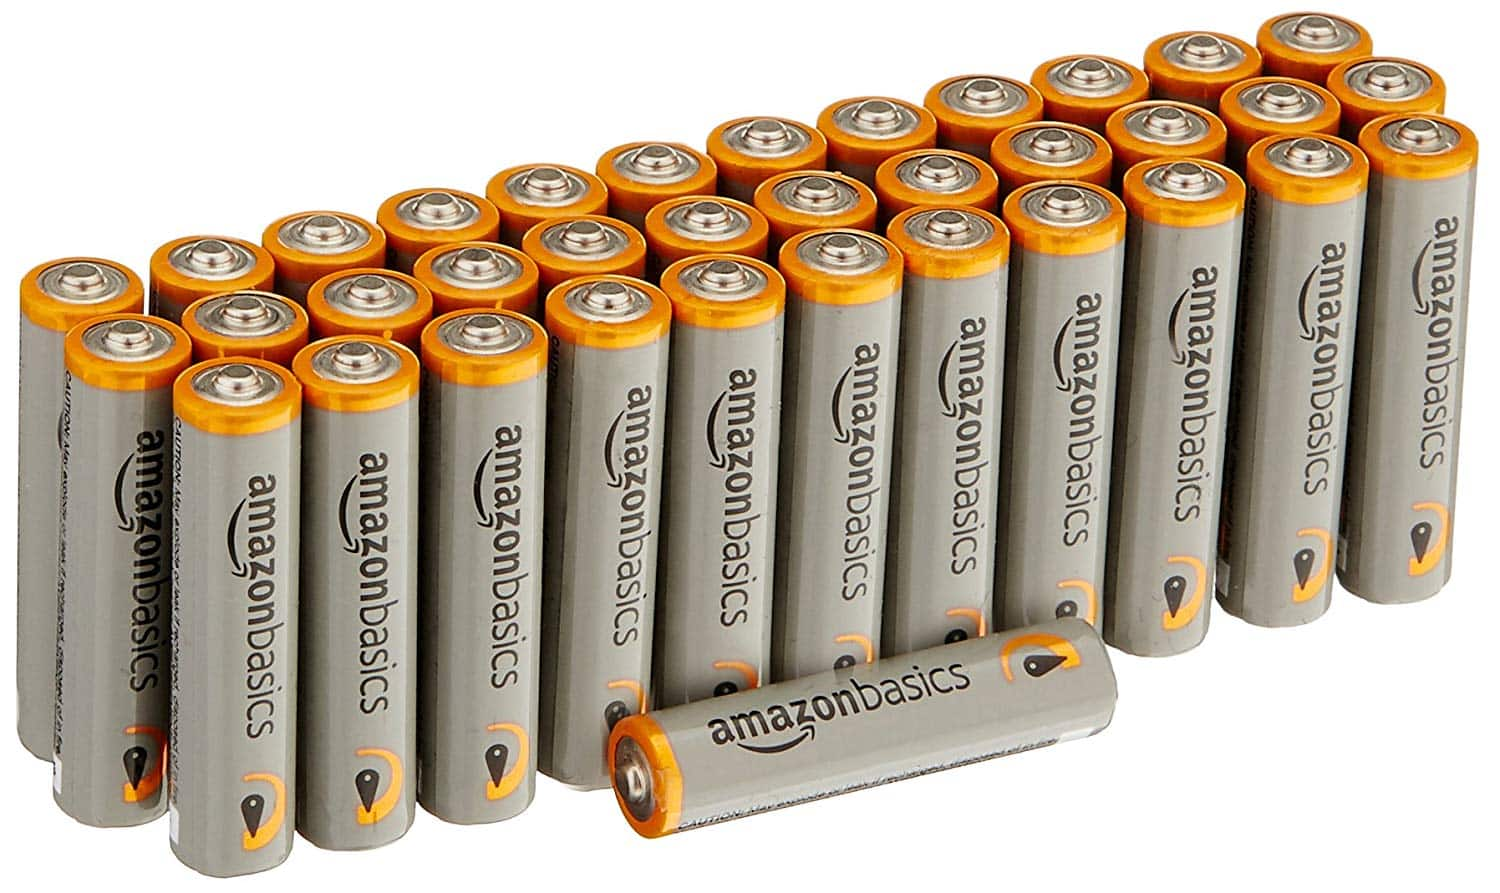 AmazonBasics AAA 1.5 Volt Performance Alkaline Batteries $3.48 - Pack of 36 with 50% off S&S coupon YMMV?